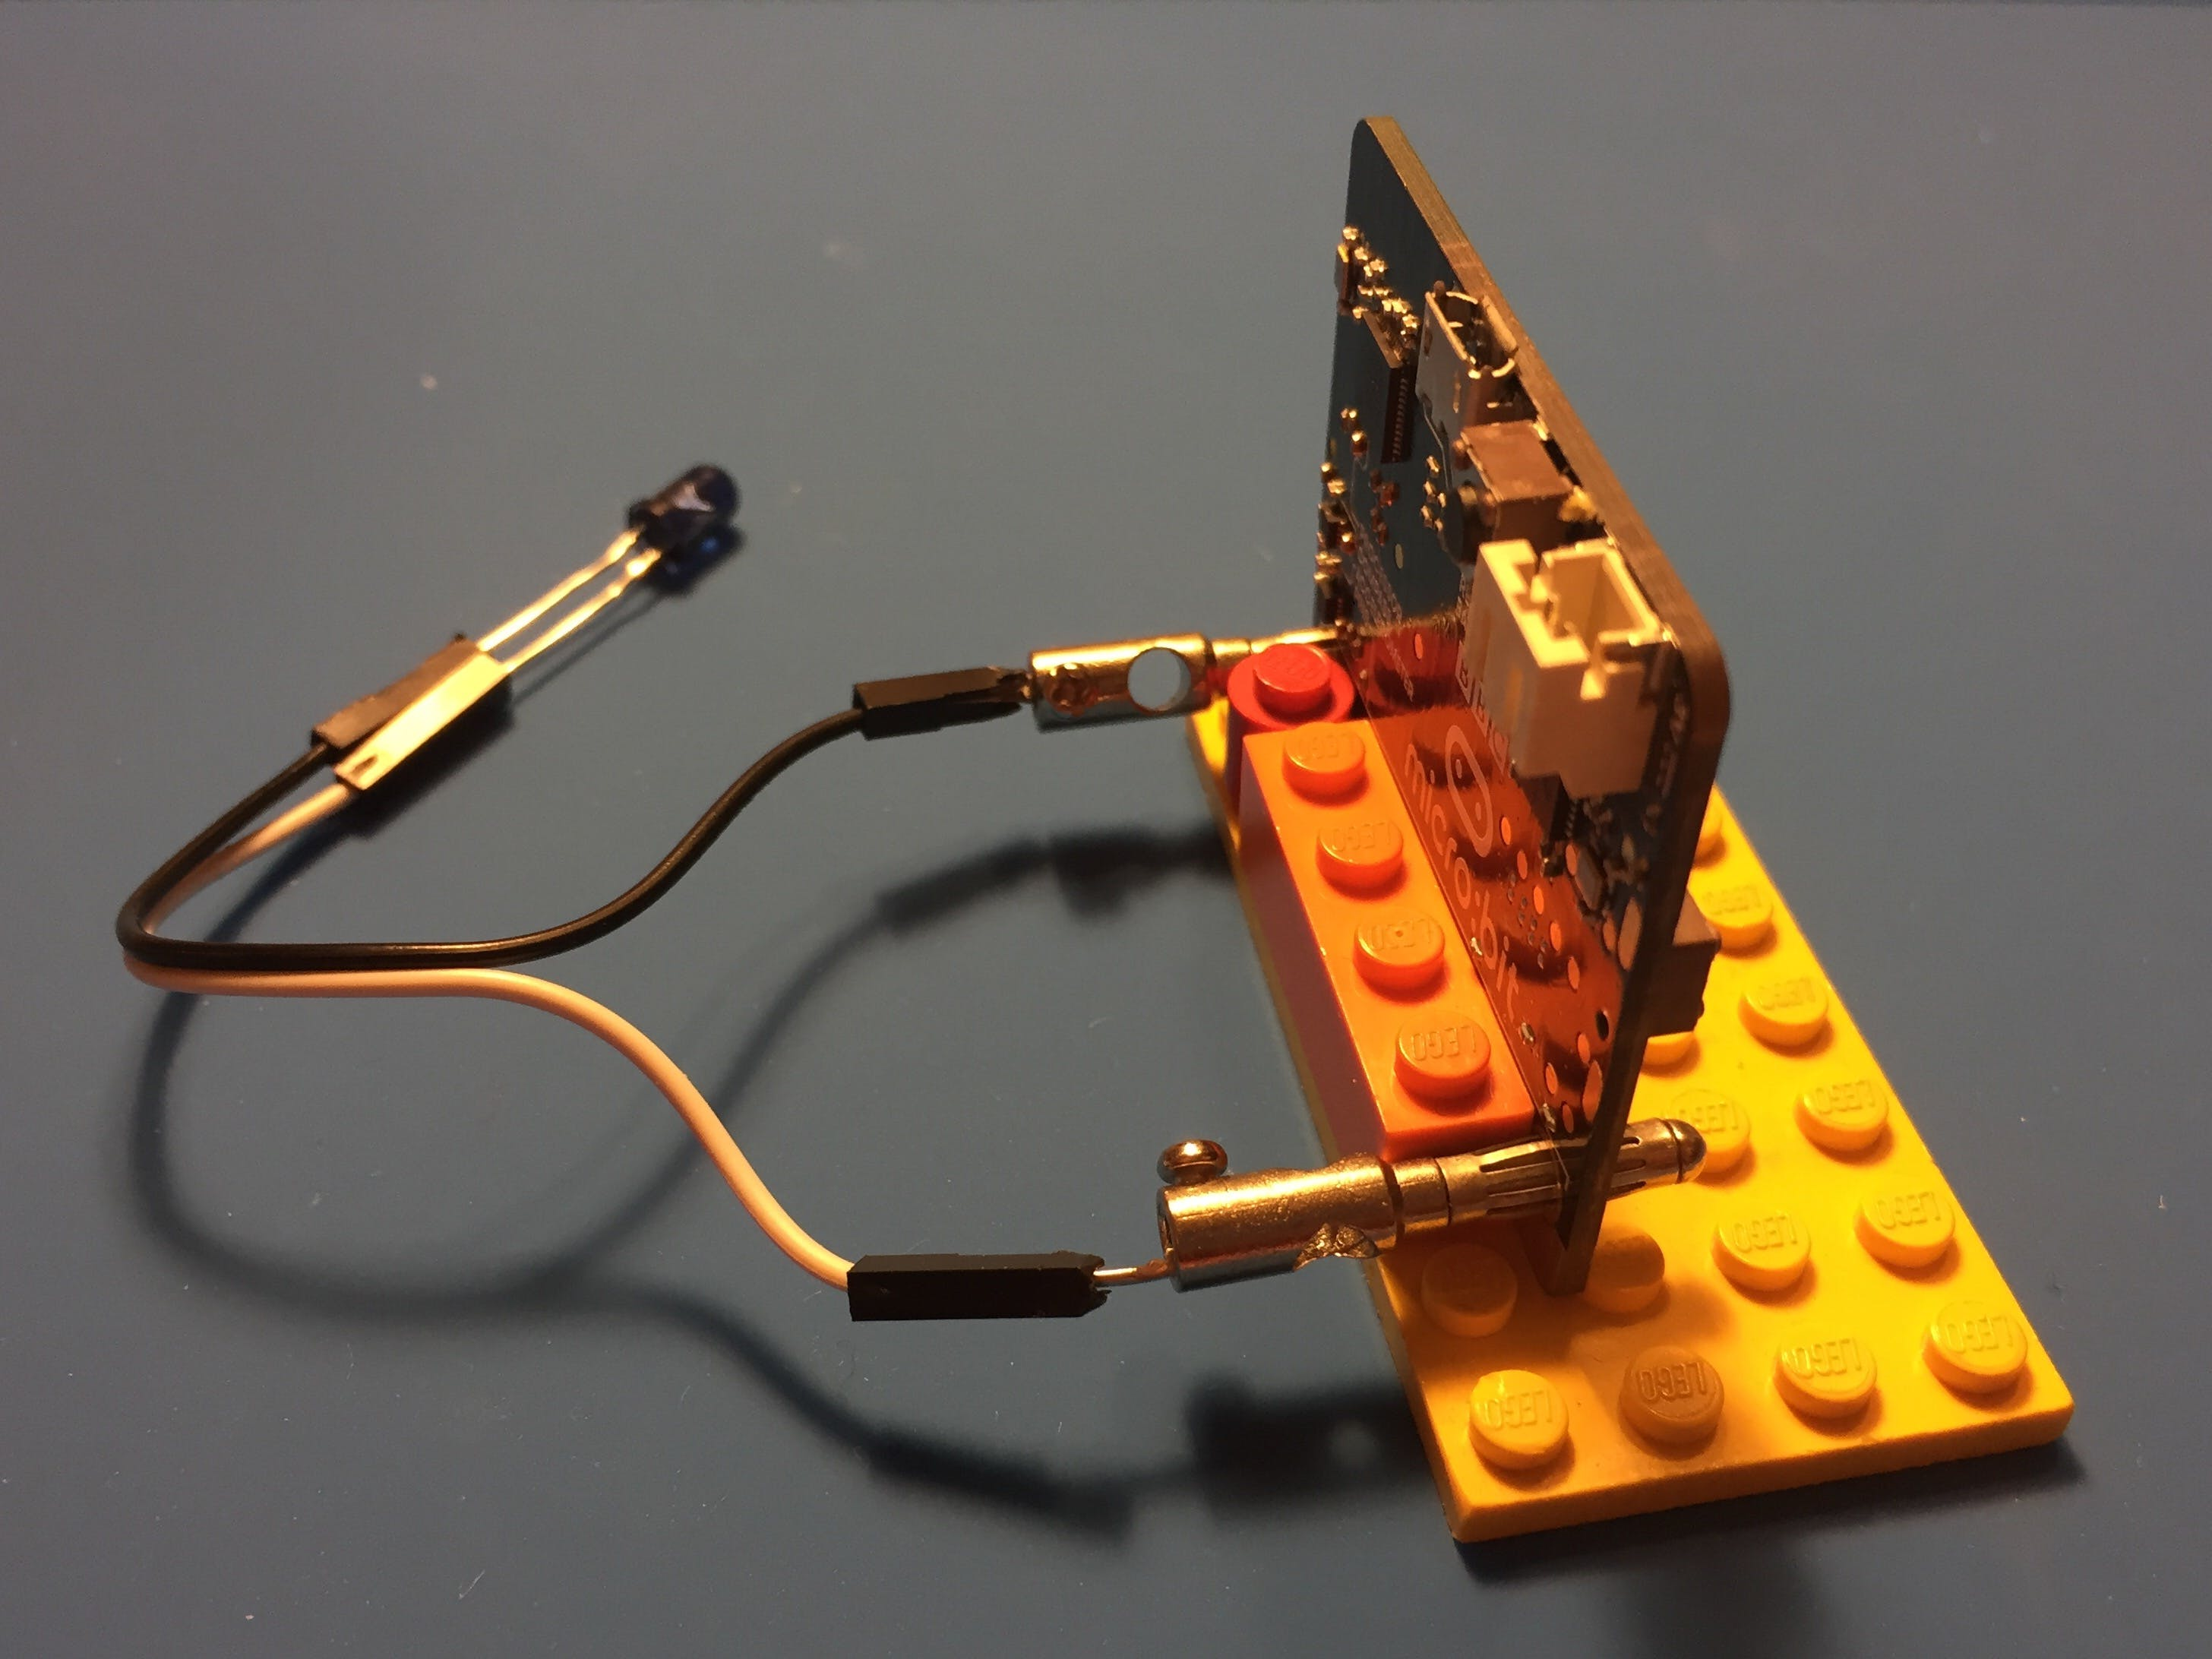 micro:bit fits well with LEGO bricks